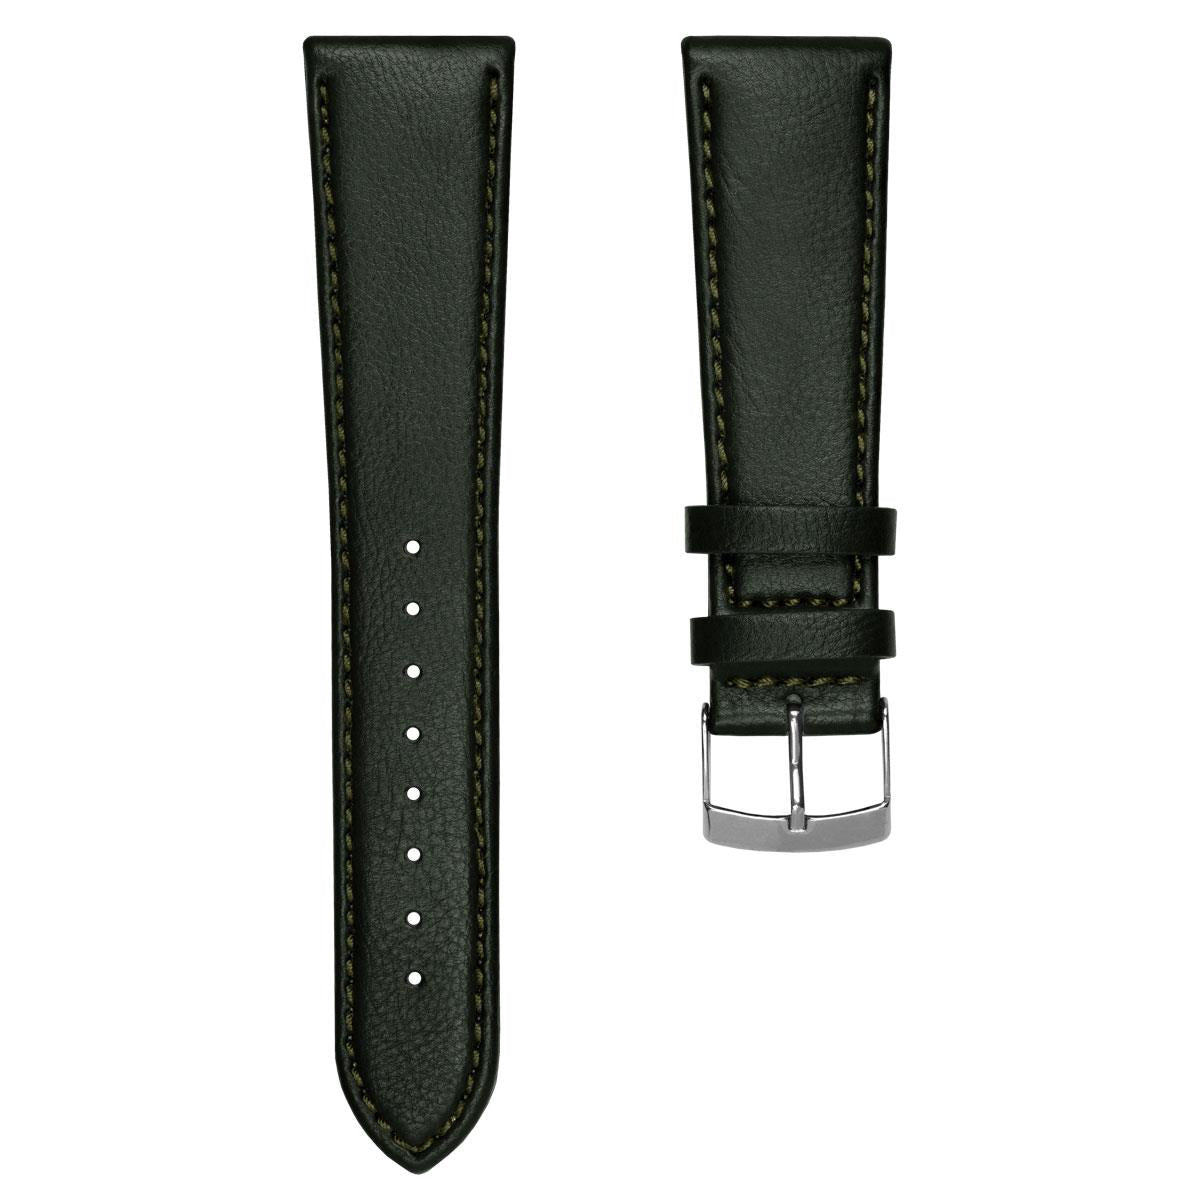 Lanciano Premium Vegan Eco-Leather Watch Strap